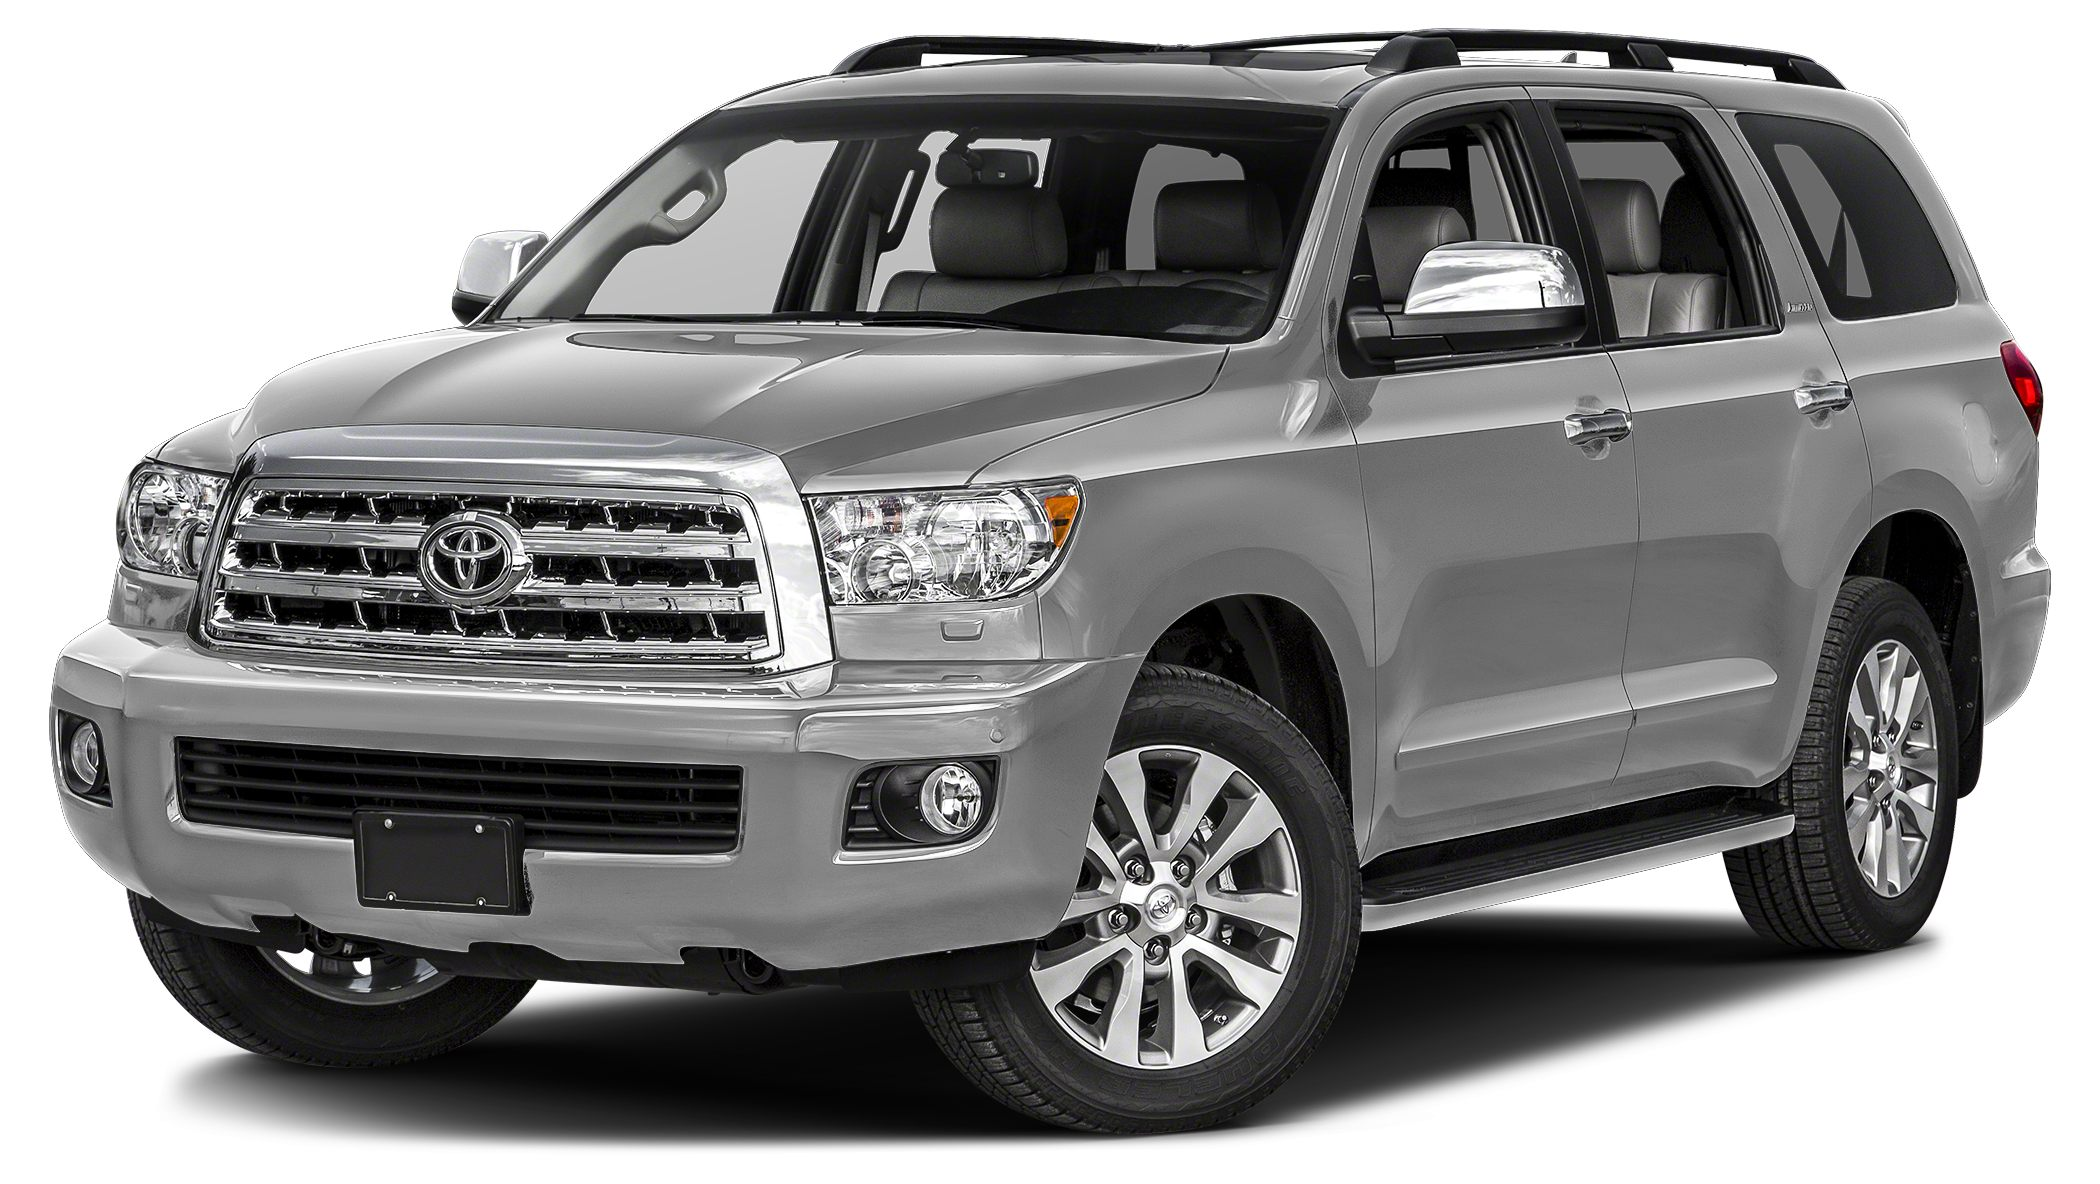 2017 Toyota Sequoia Limited Westboro Toyota is proud to present HASSLE FREE BUYING EXPERIENCE with